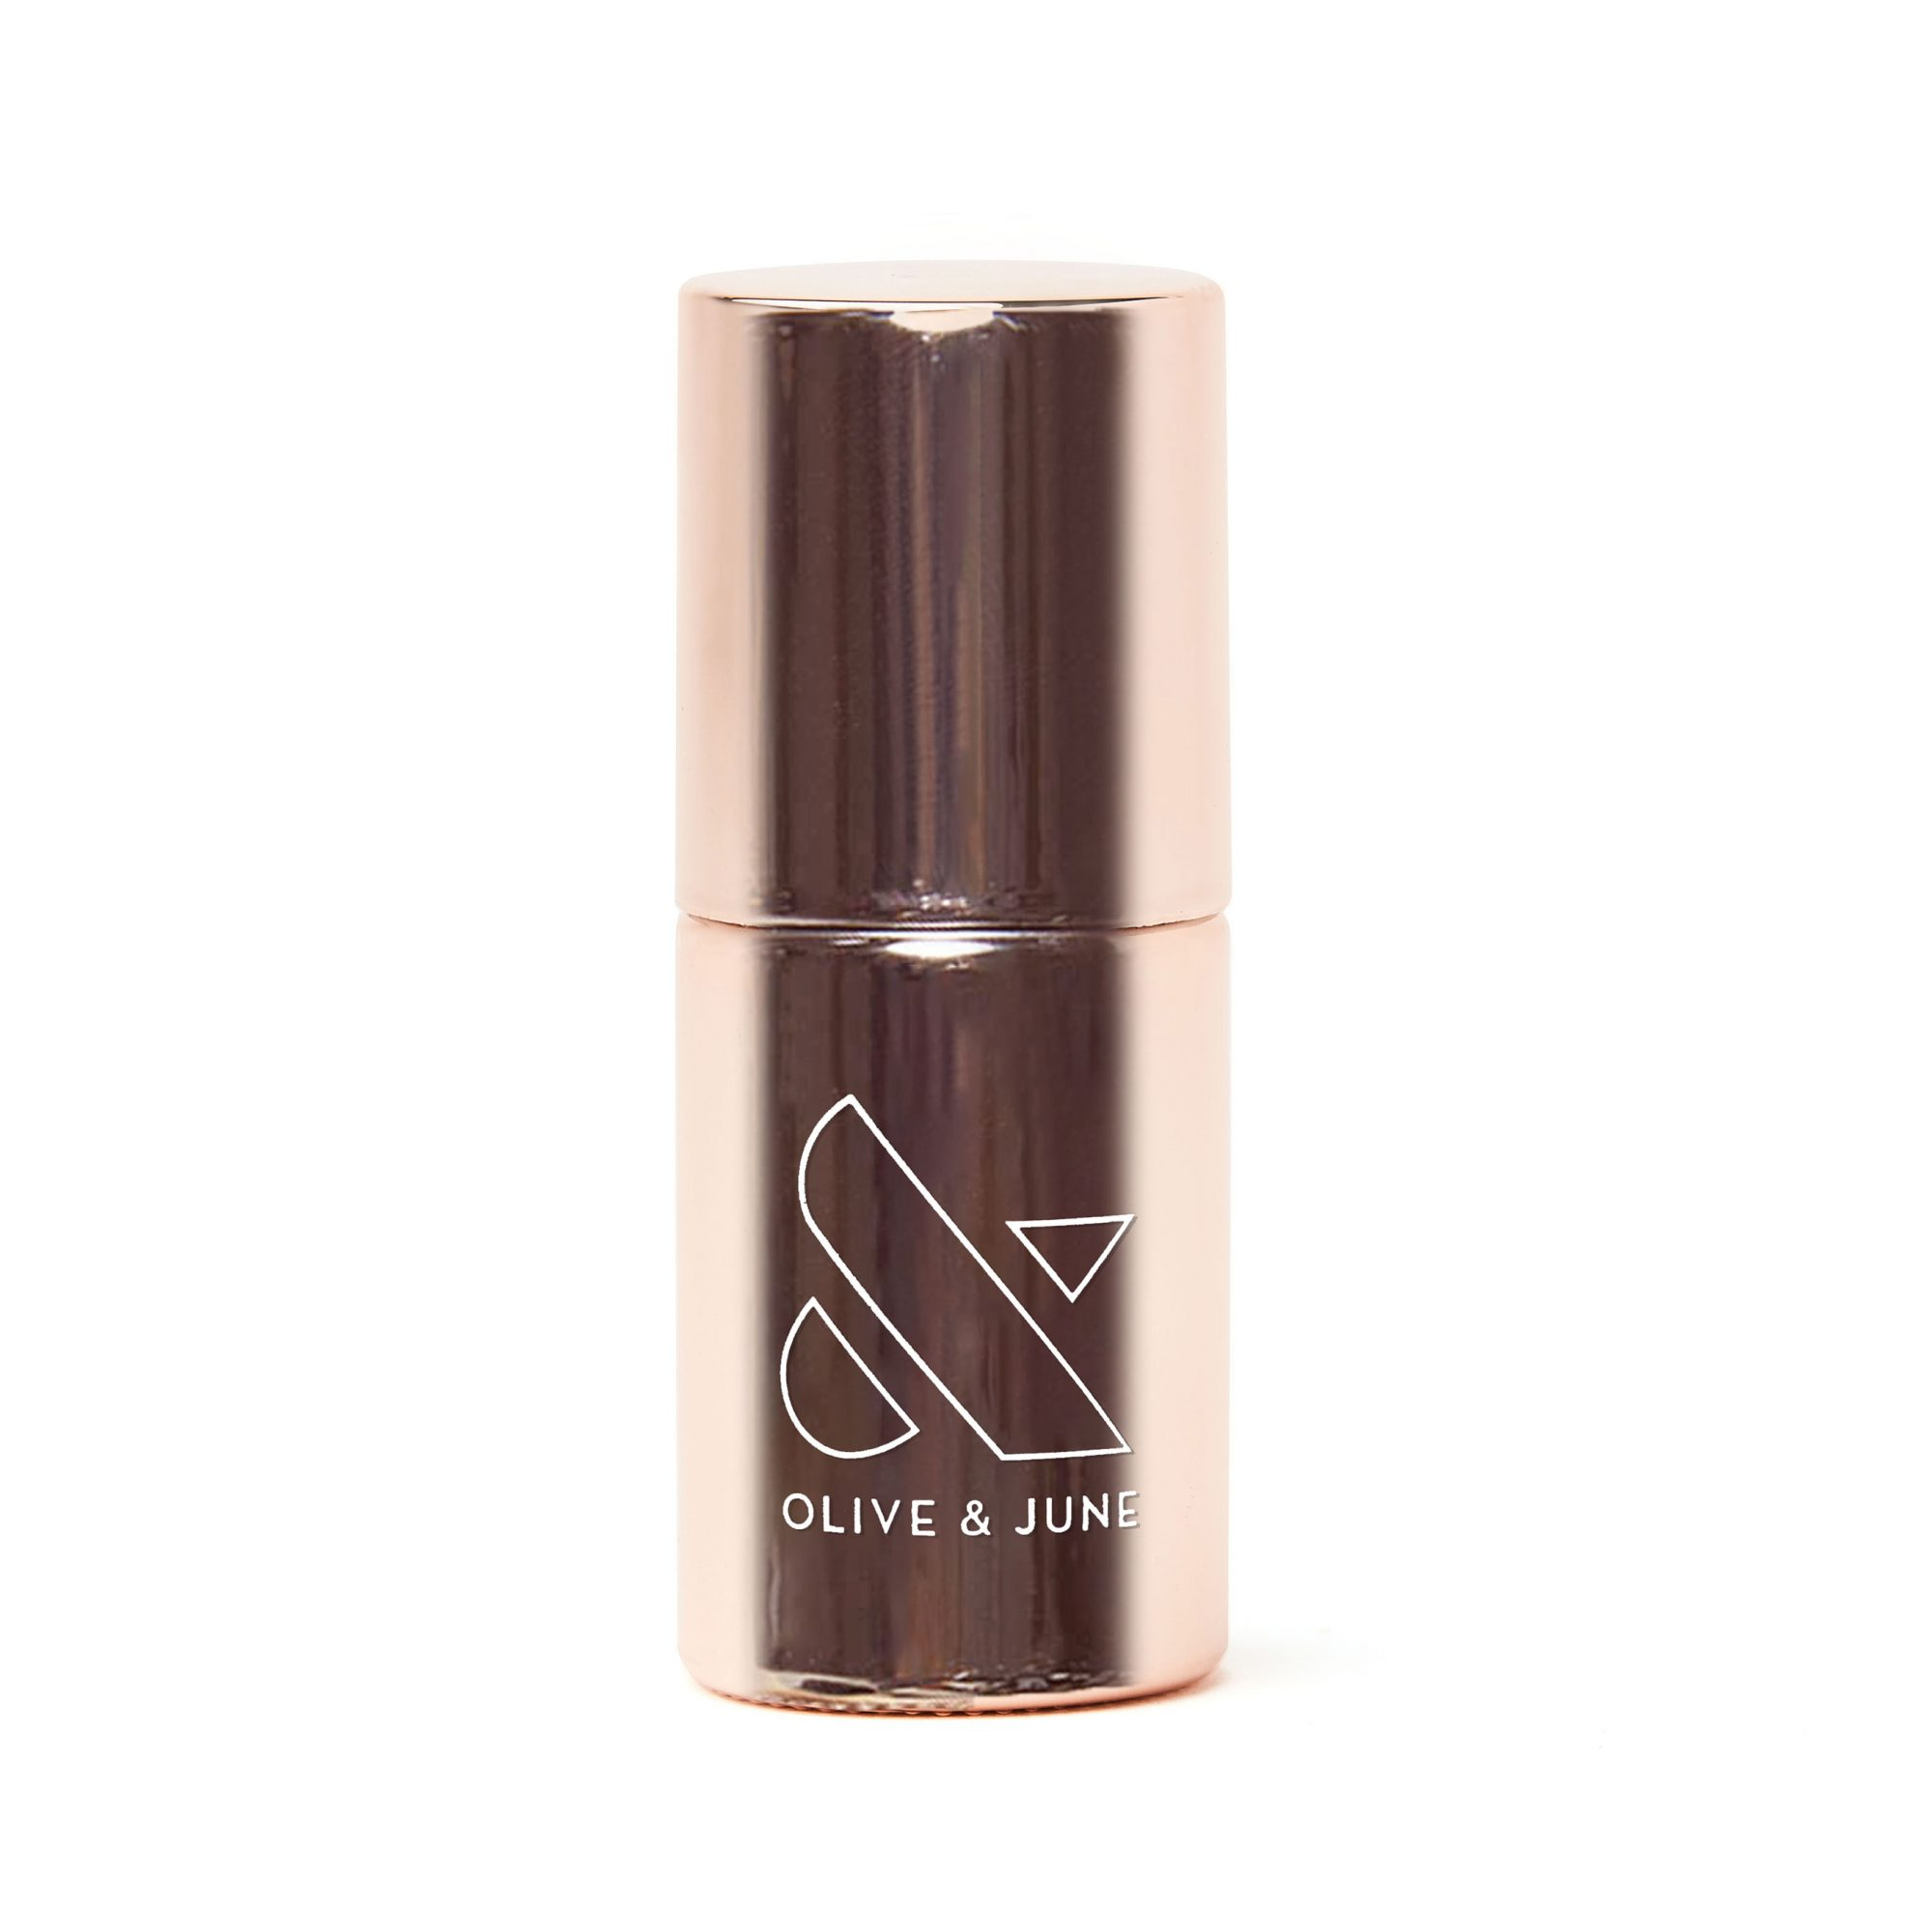 Beauty-Awards-Eyes-Nails-Olive-June-Nail-Primer